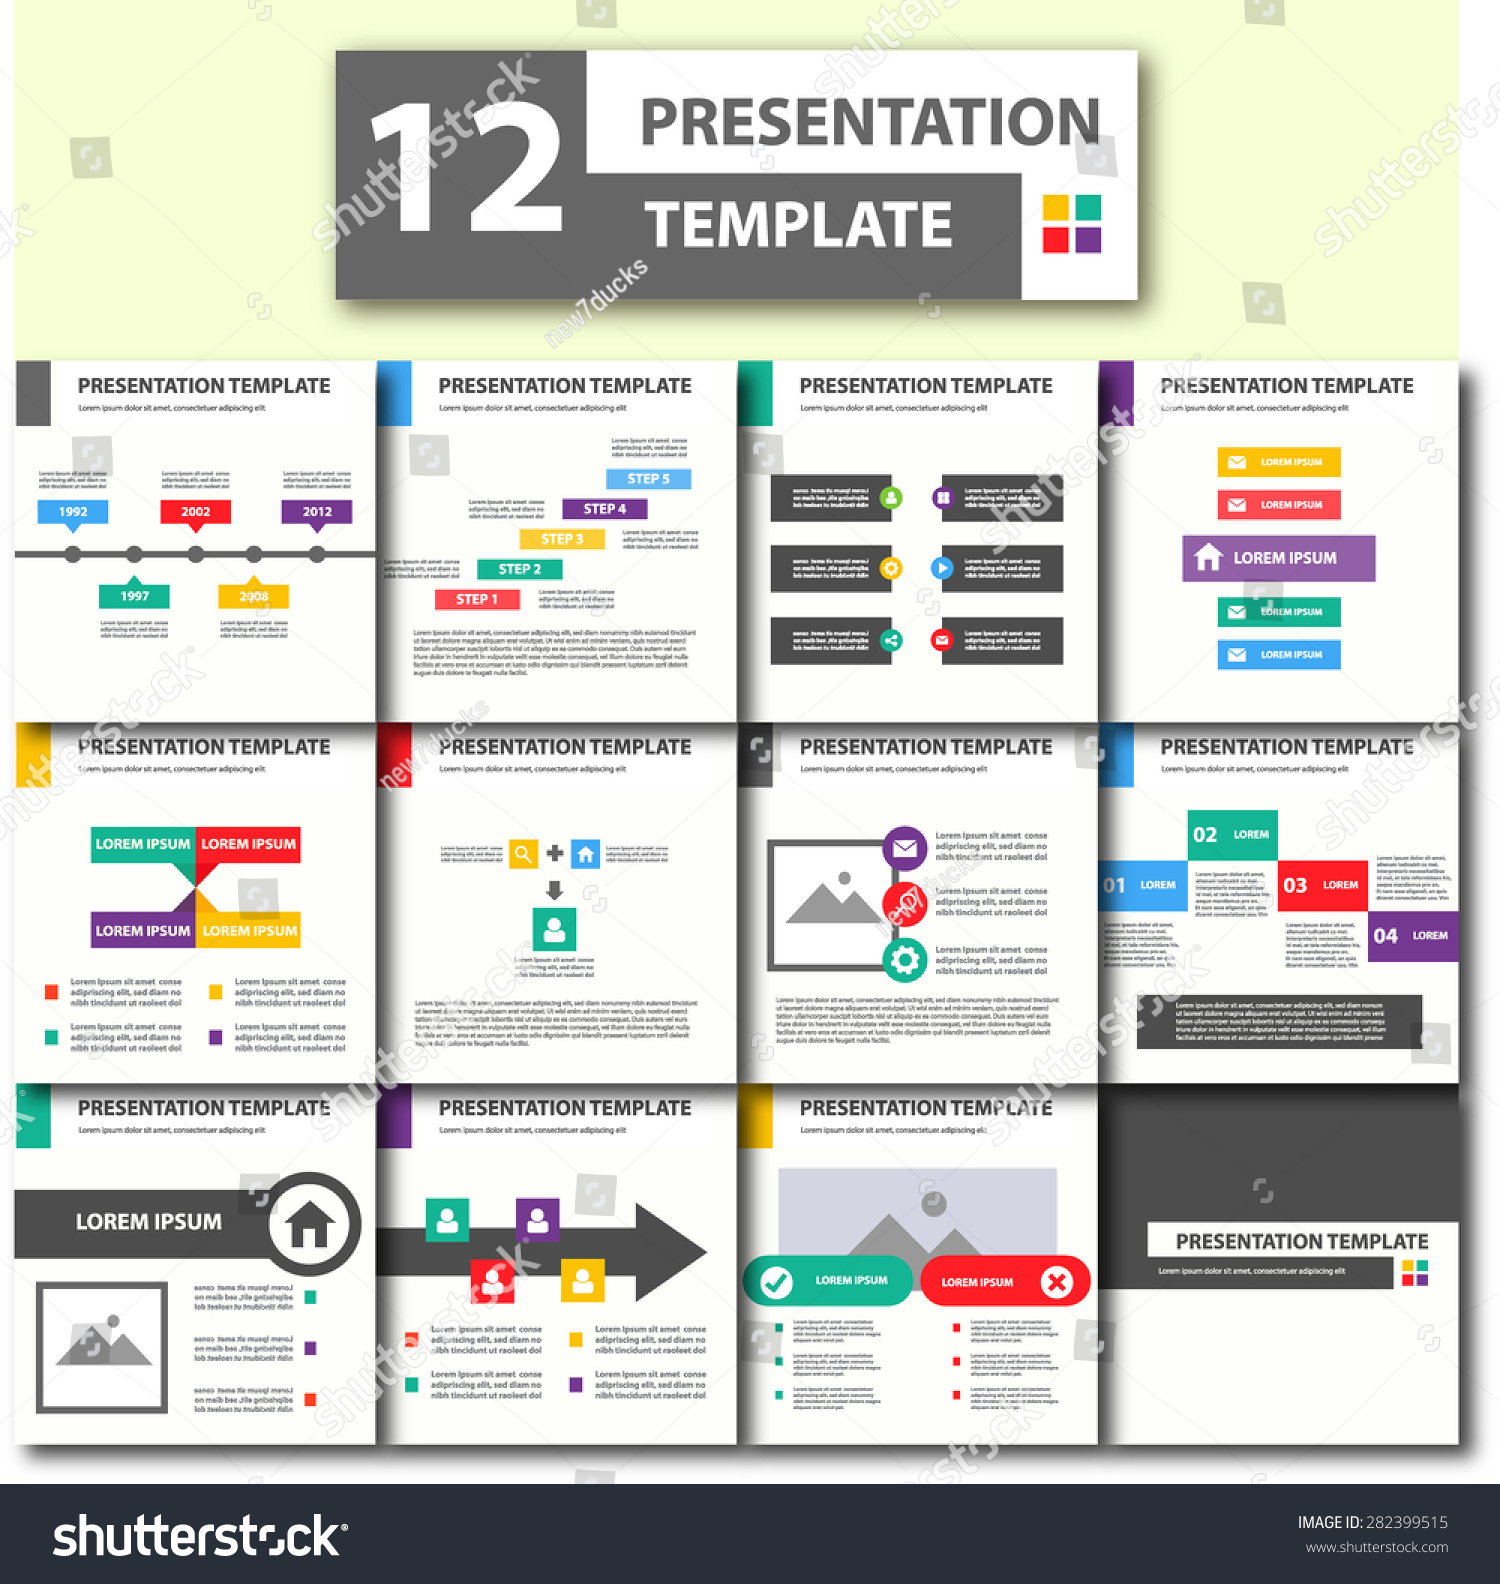 Colorful Presentation Template Brochure Flyer Design Set Black and more color